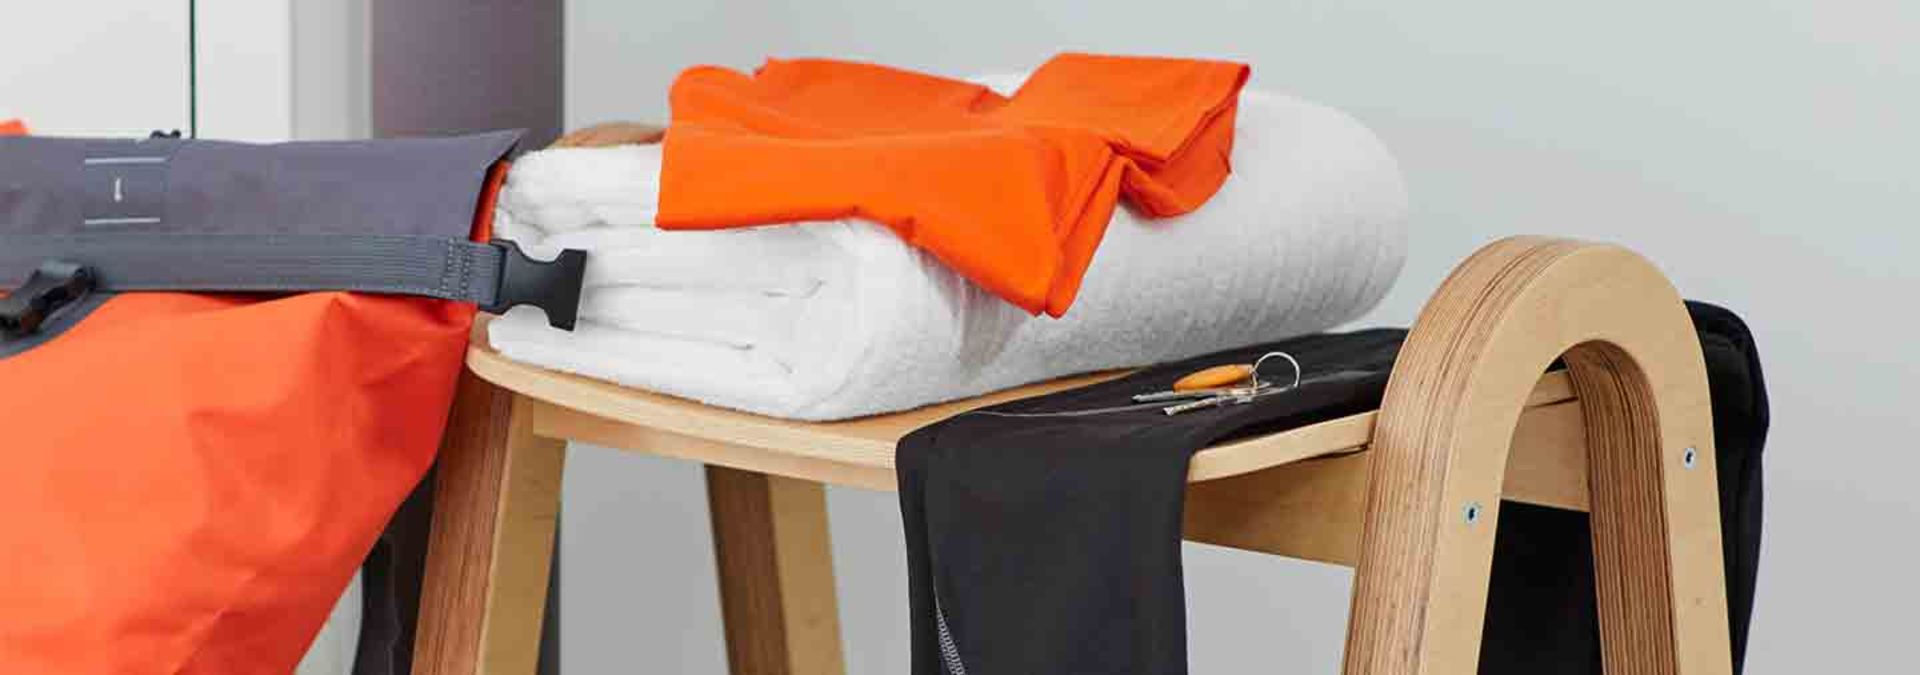 Workout clothes and a white towel on a table